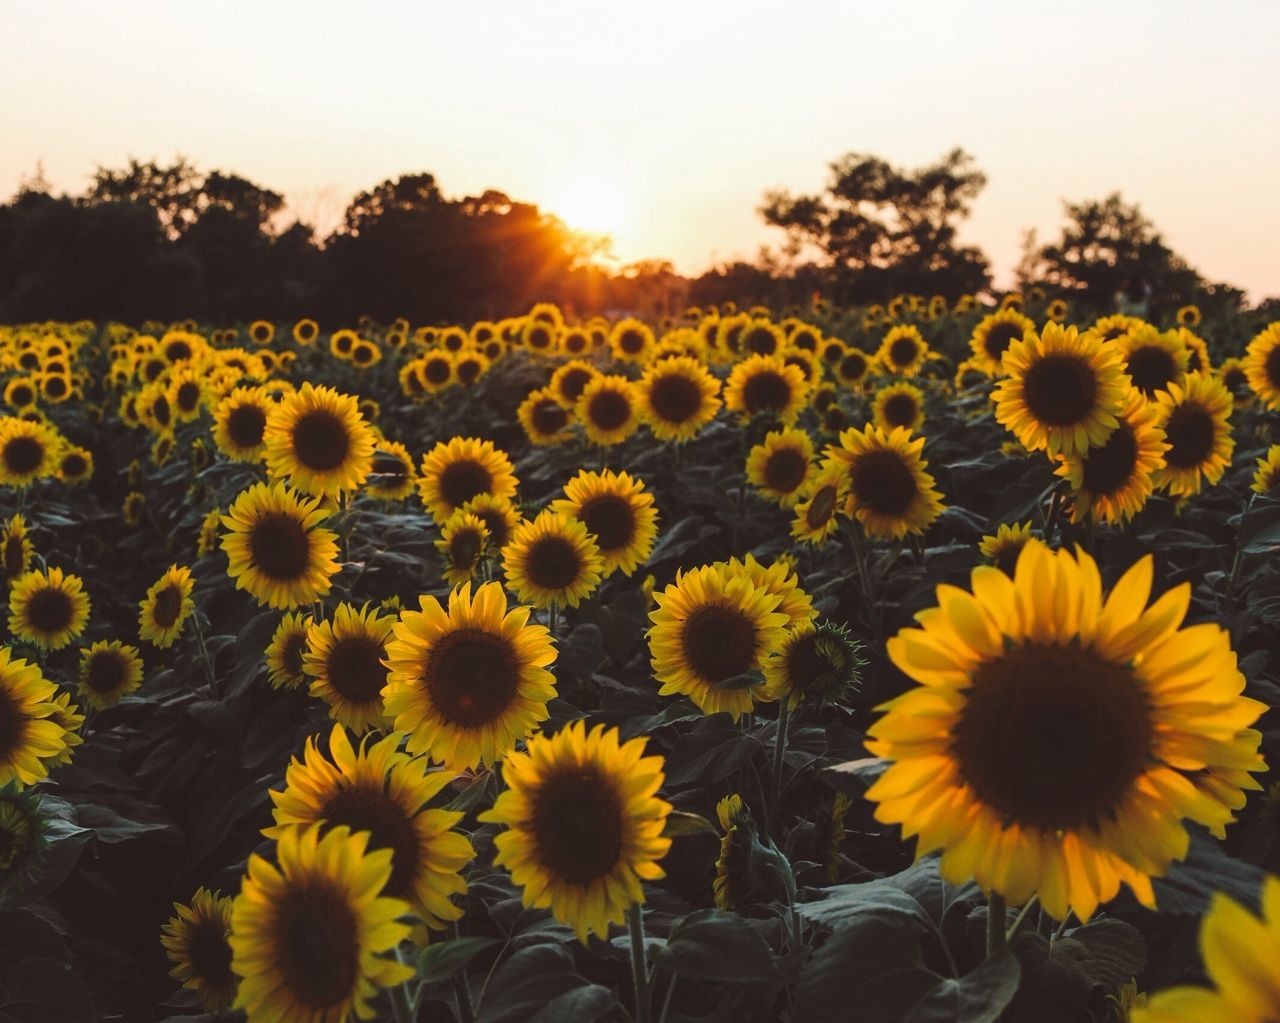 Amazing Wallpaper Macbook Sunflower - 1c308880f92ced0043d88ad79b64ae14  Perfect Image Reference_41774.jpg